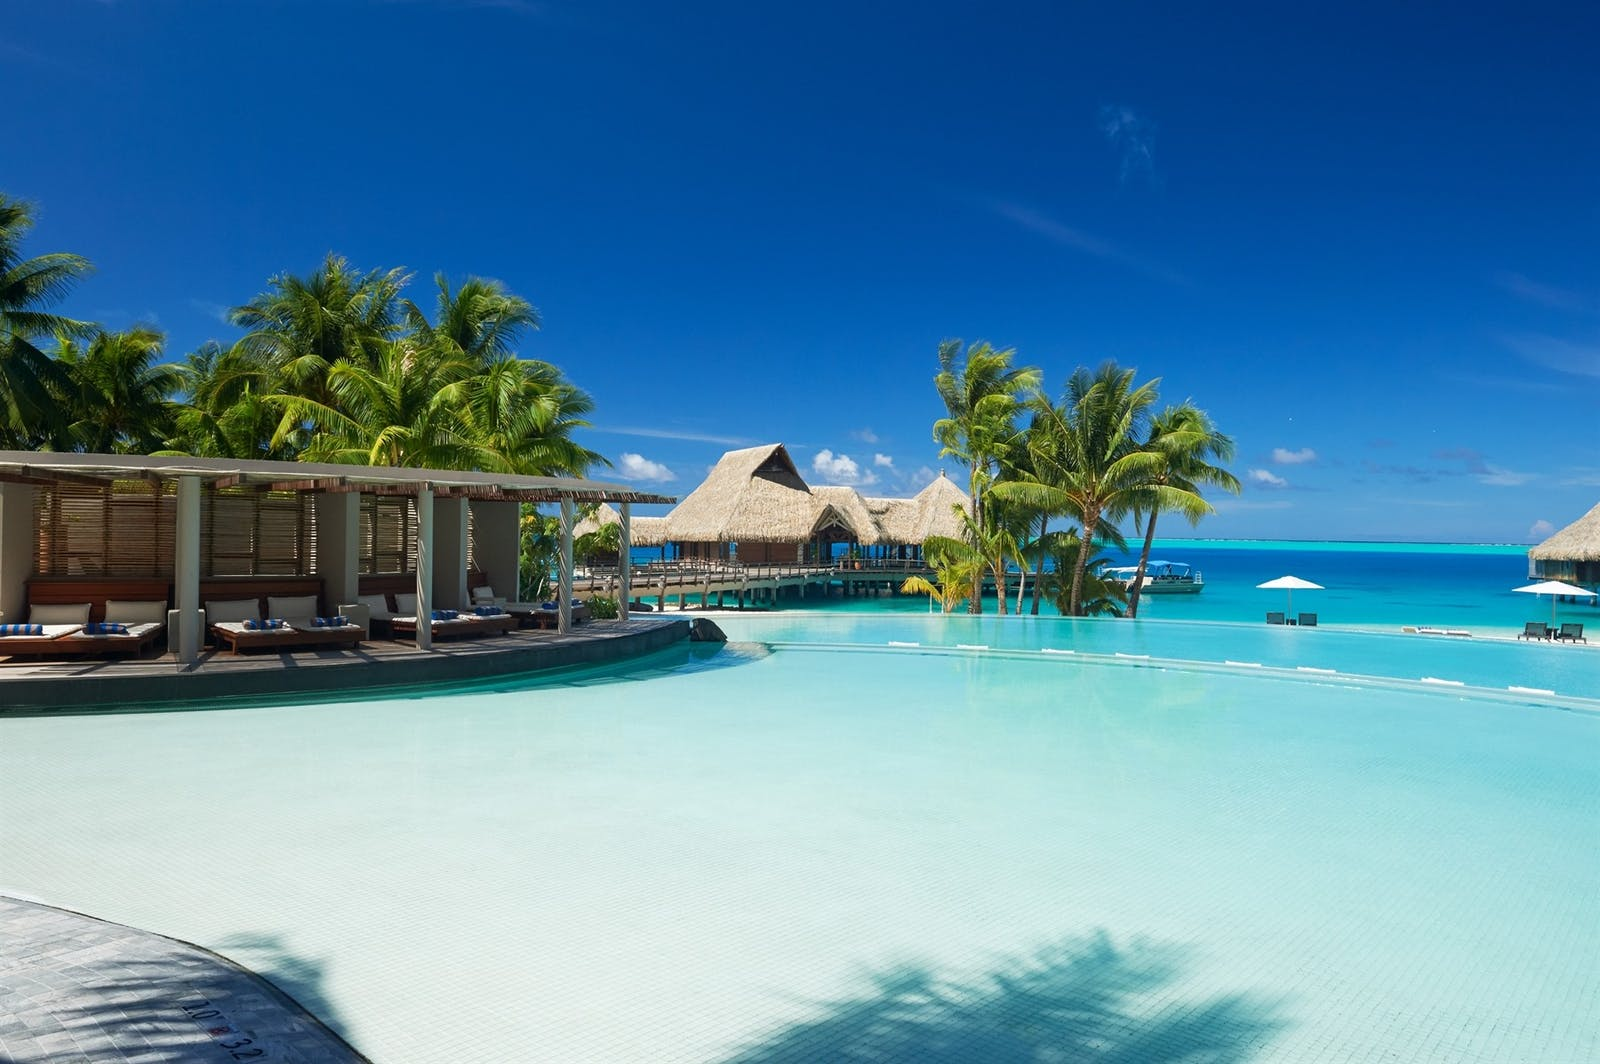 Pool View at Conrad Bora Bora Nui, French Polynesia